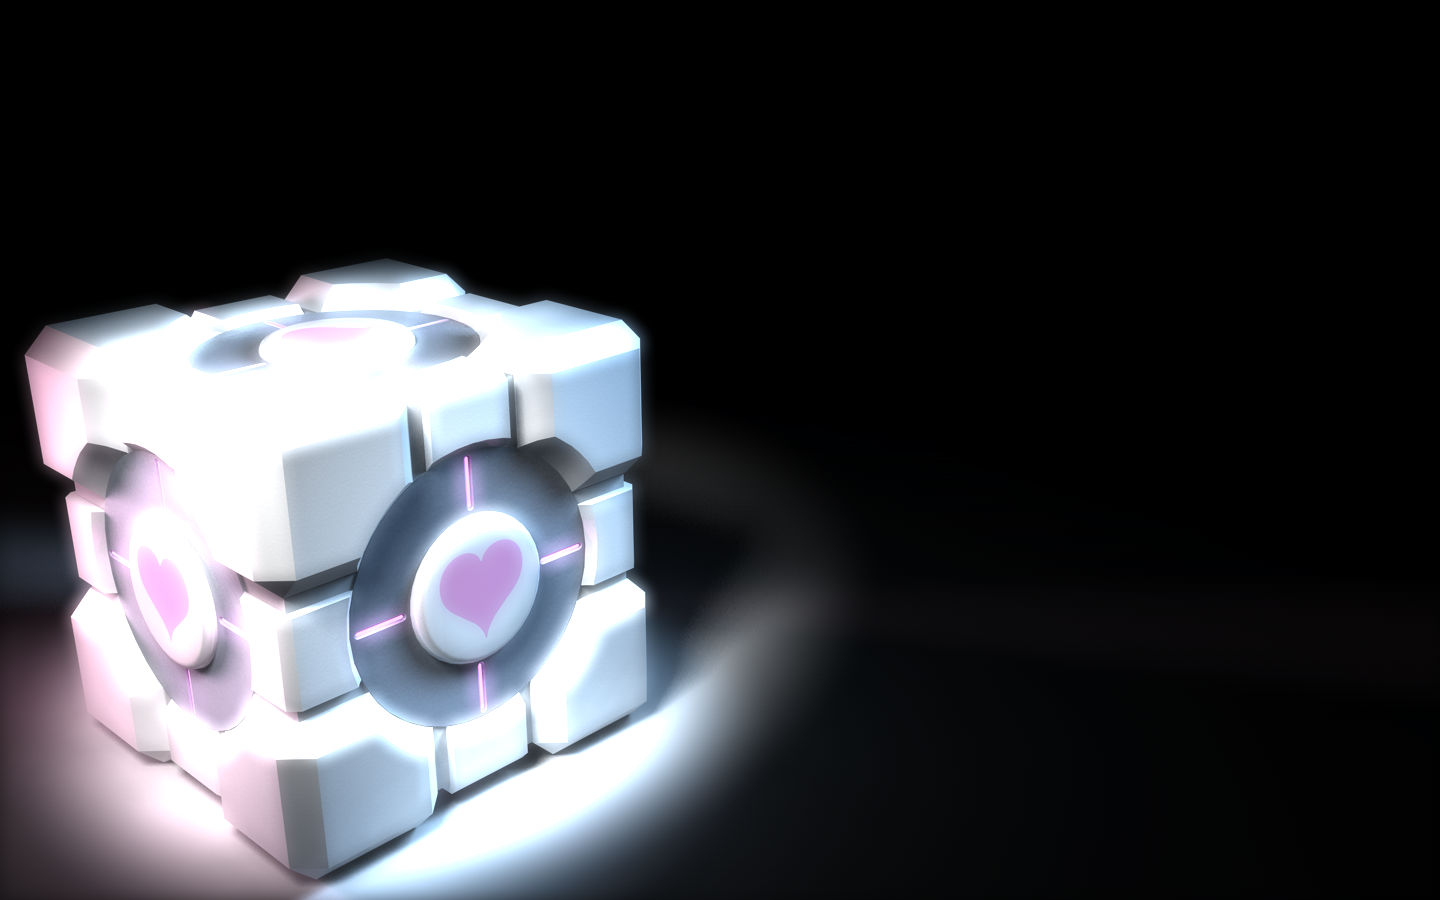 companioncube Companion Cube wallpaper Gaming